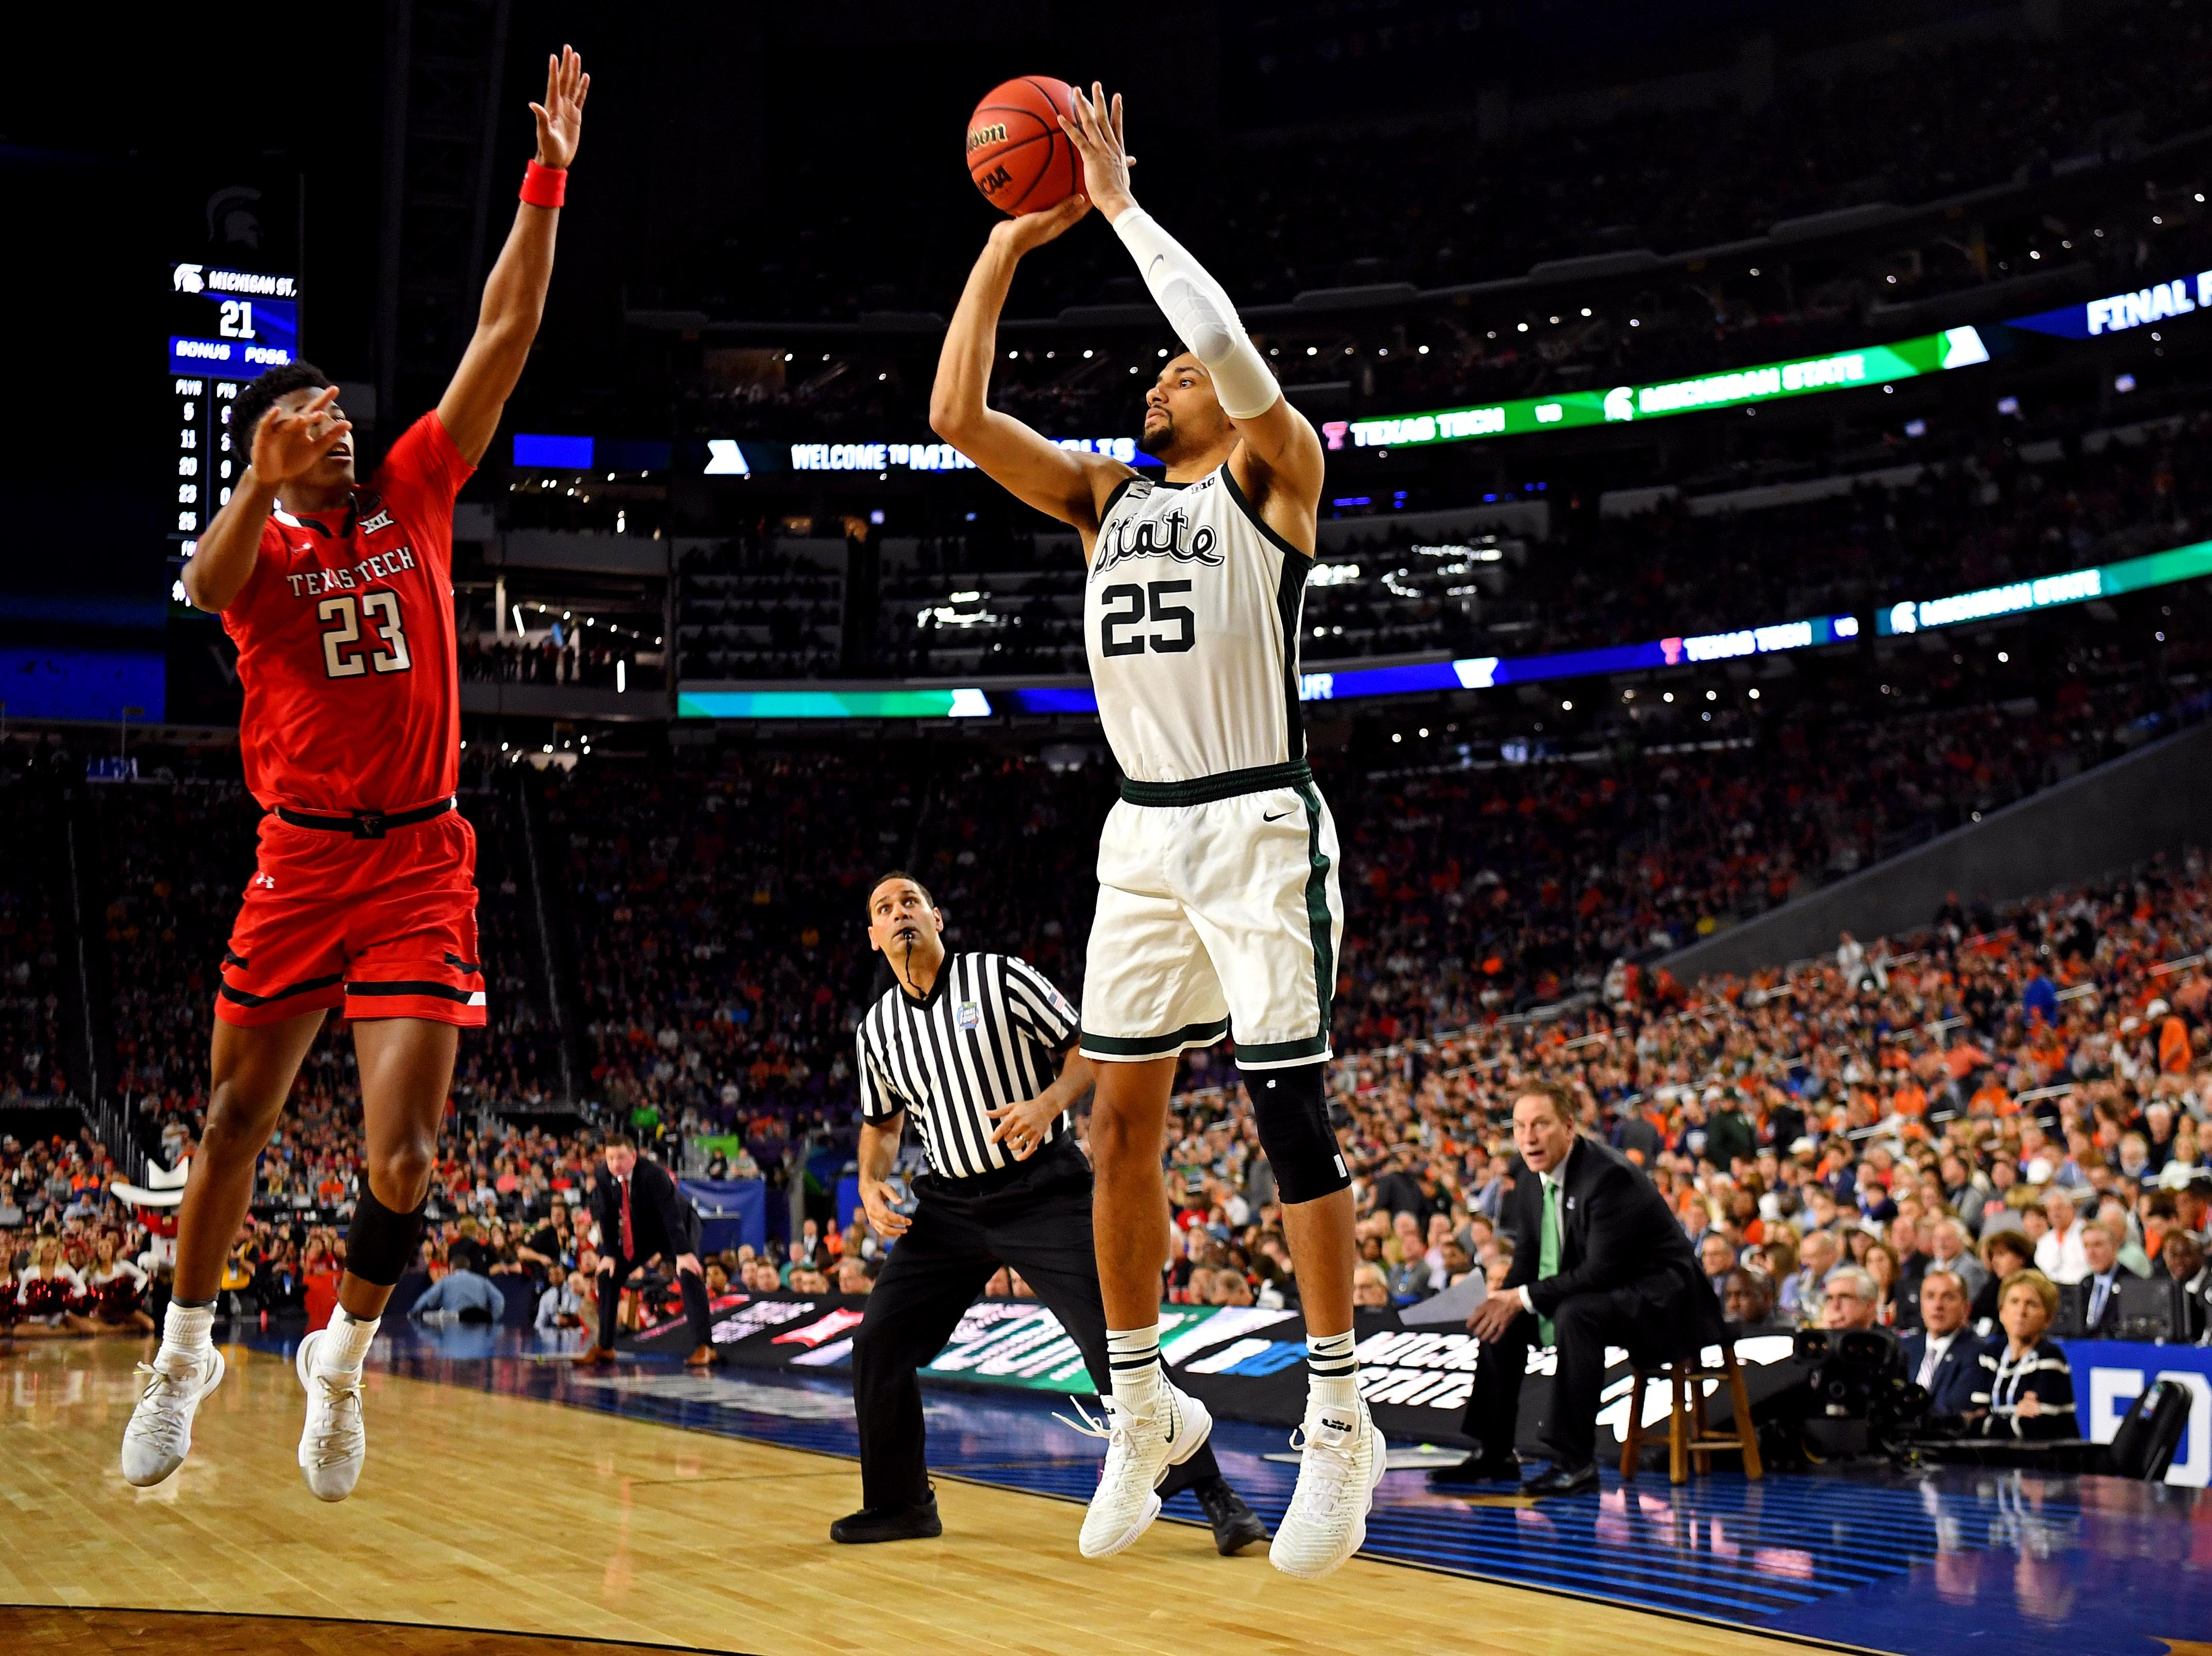 Apr 6, 2019; Minneapolis, MN, USA; Michigan State Spartans forward Kenny Goins (25) shoots the ball against Texas Tech Red Raiders guard Jarrett Culver (23) during the second half in the semifinals of the 2019 men's Final Four at US Bank Stadium. Mandatory Credit: Bob Donnan-USA TODAY Sports